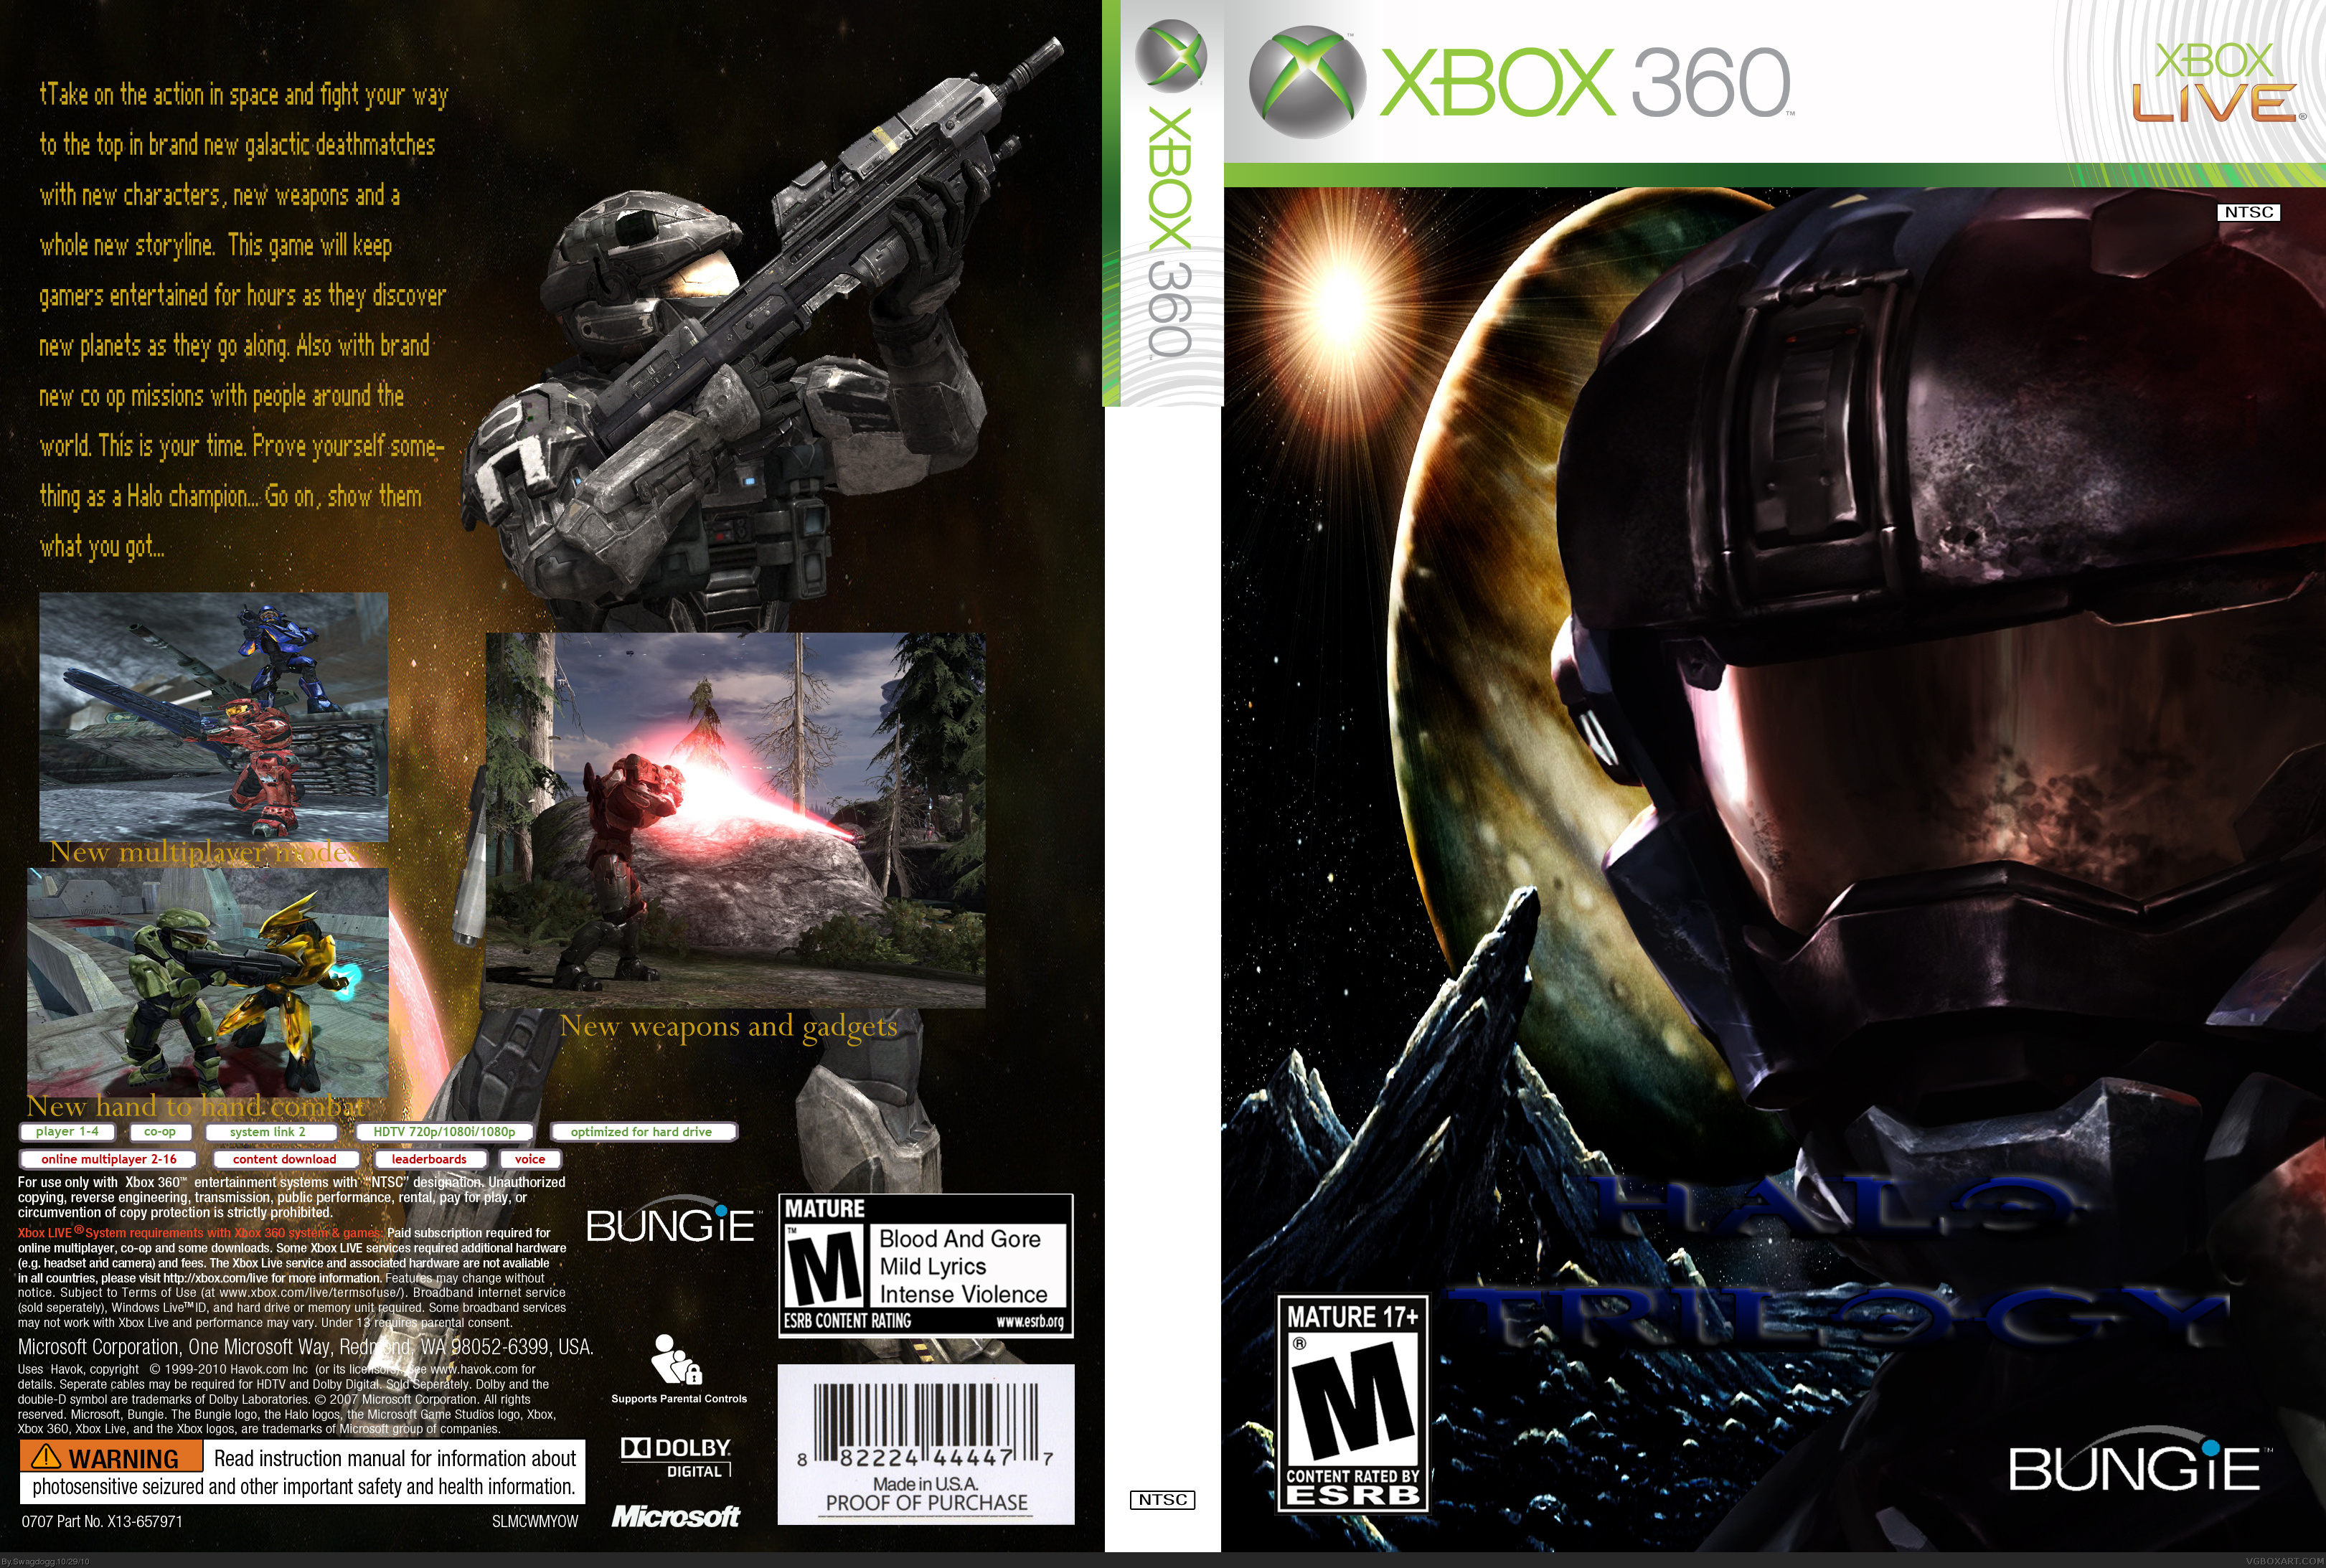 Halo: The Trilogy box cover